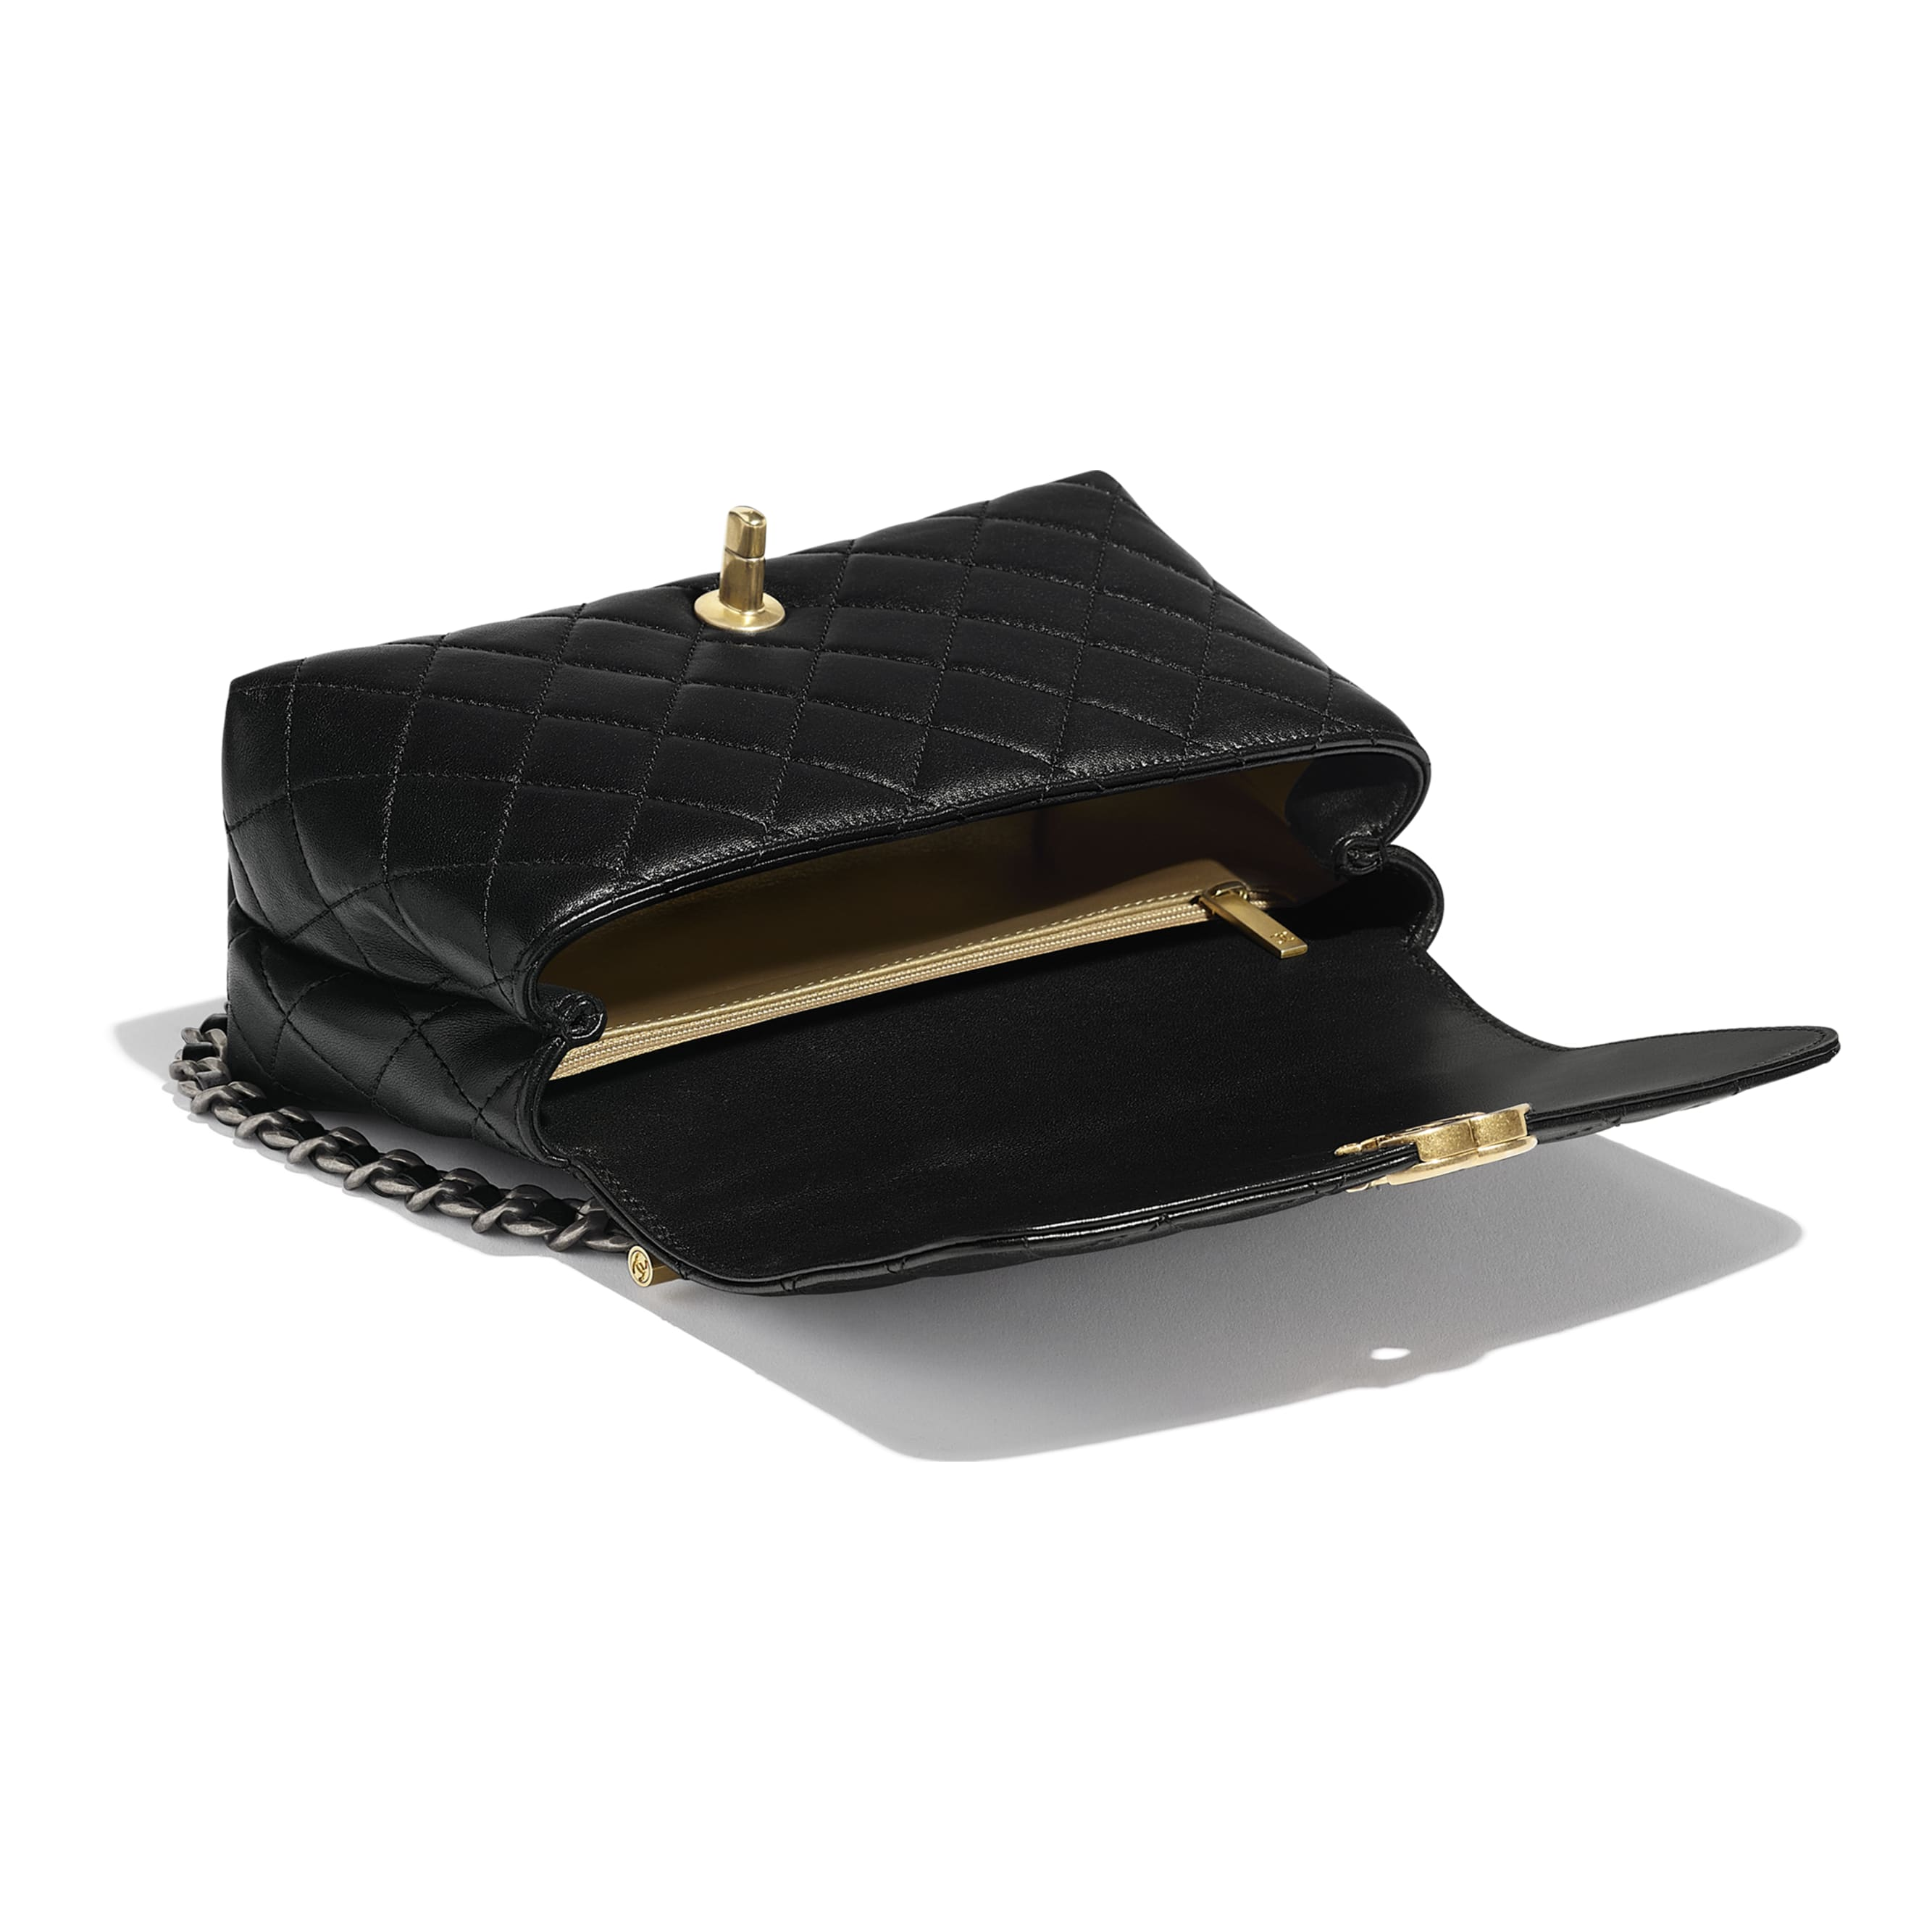 Small Flap Bag with Top Handle - Black - Lambskin, Gold-Tone & Ruthenium-Finish Metal - CHANEL - Other view - see standard sized version